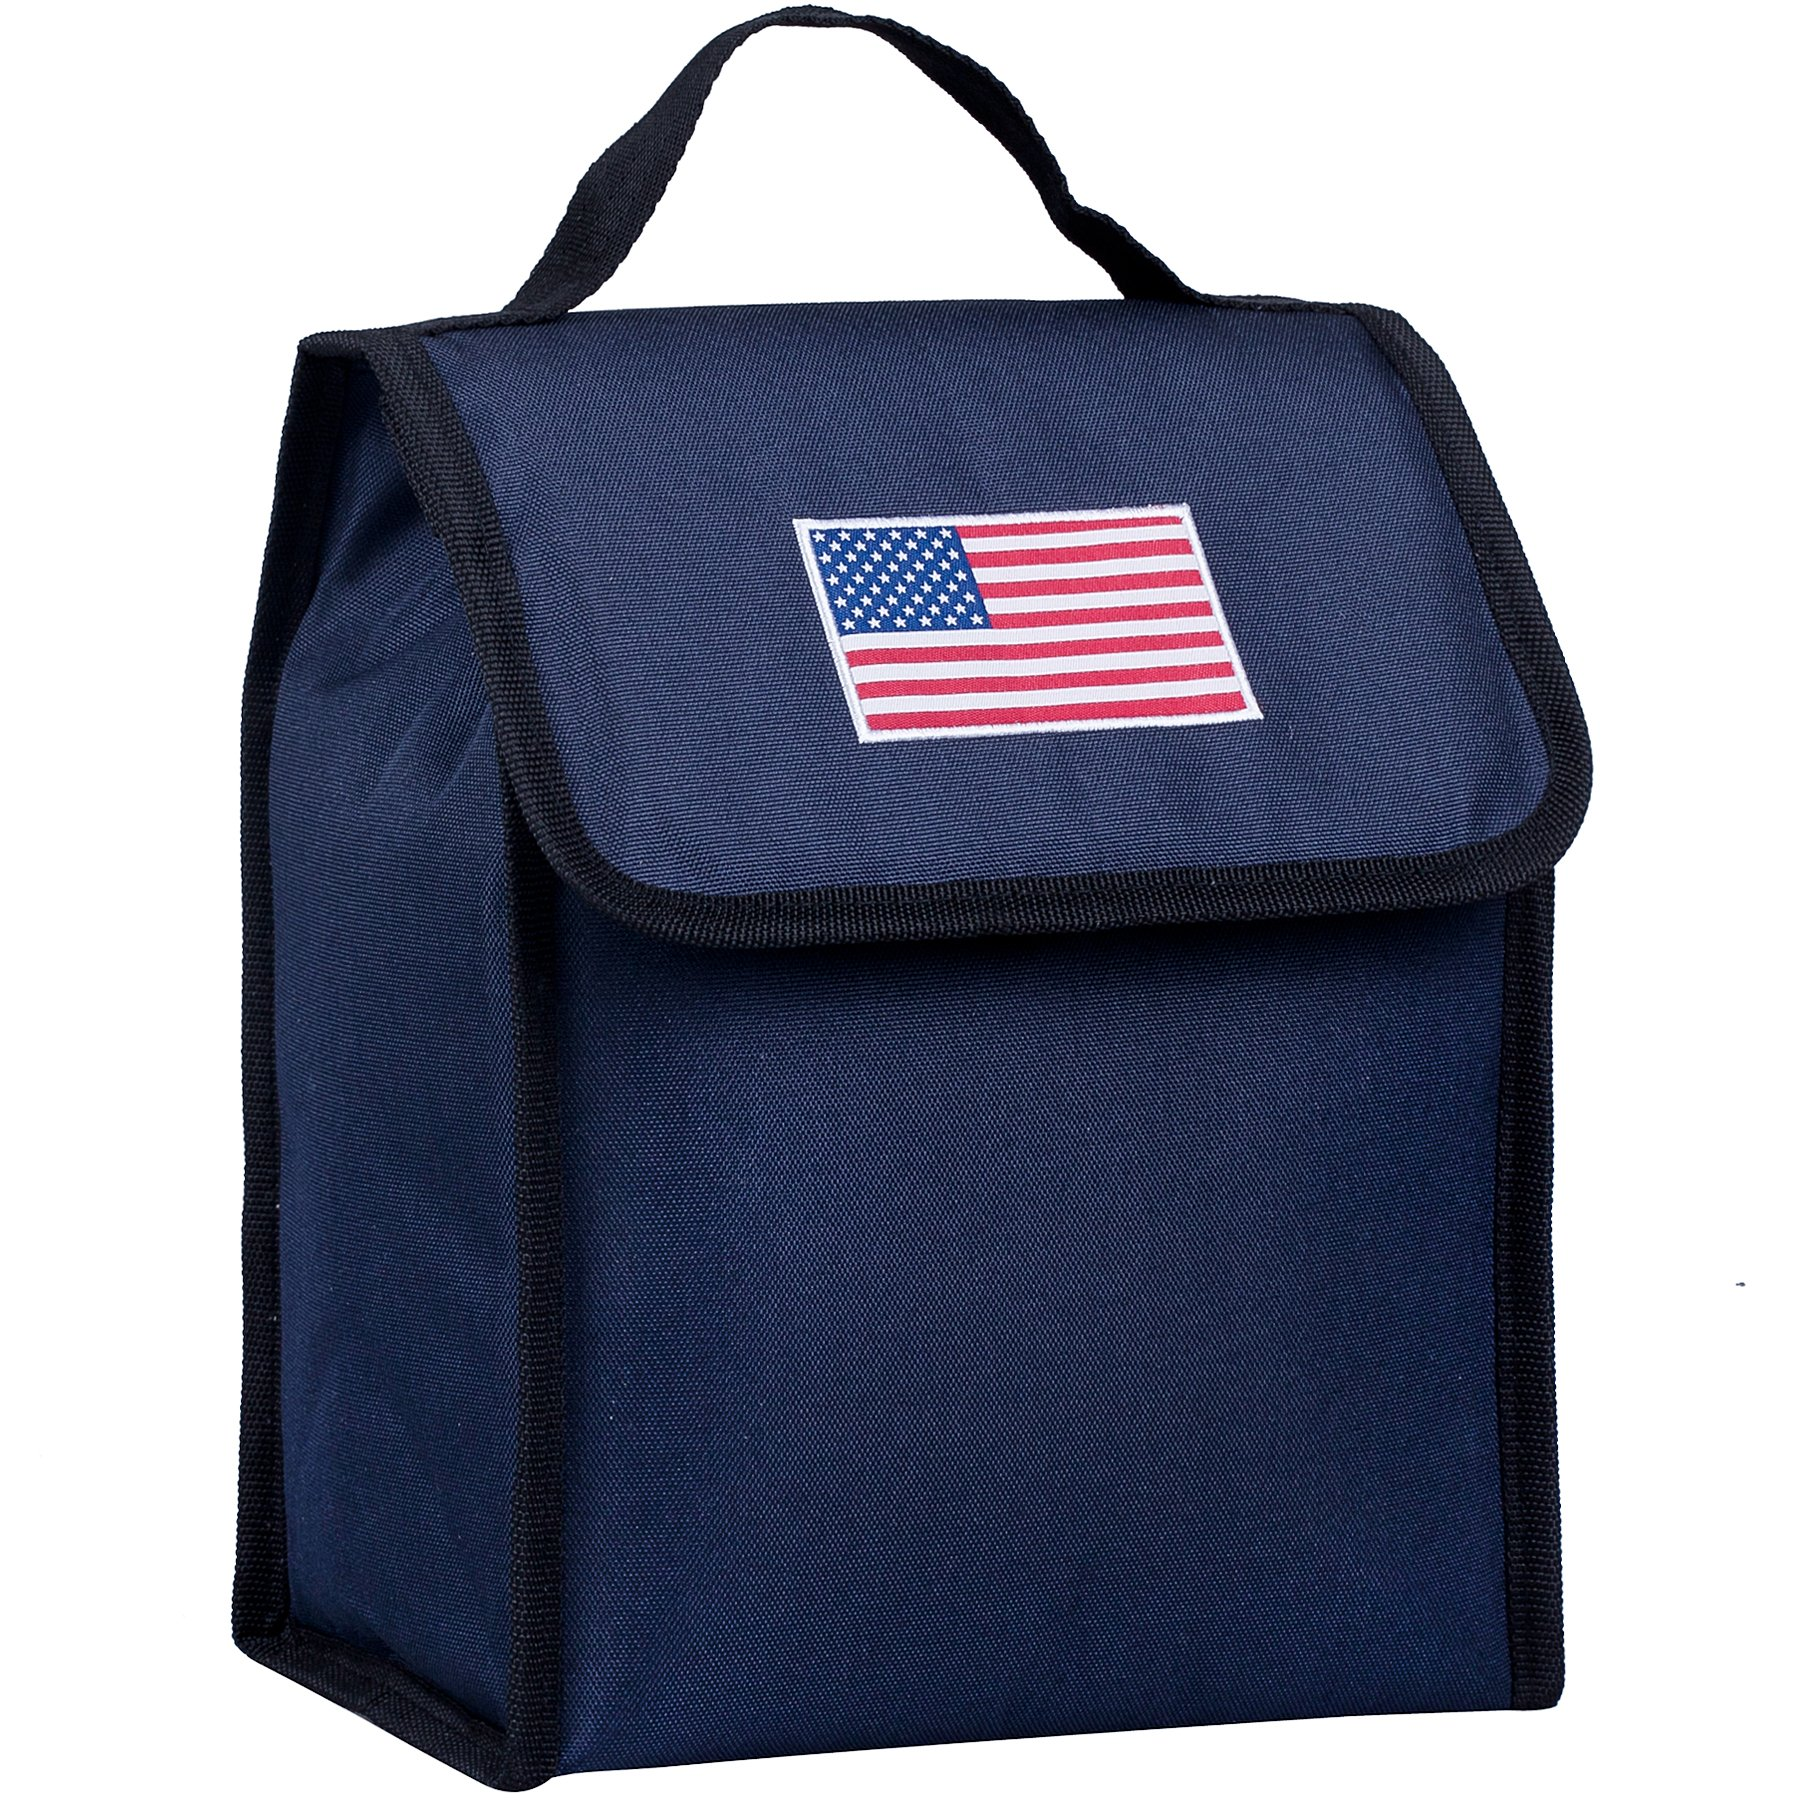 State of Mind Lunch Bag, Blue, USA